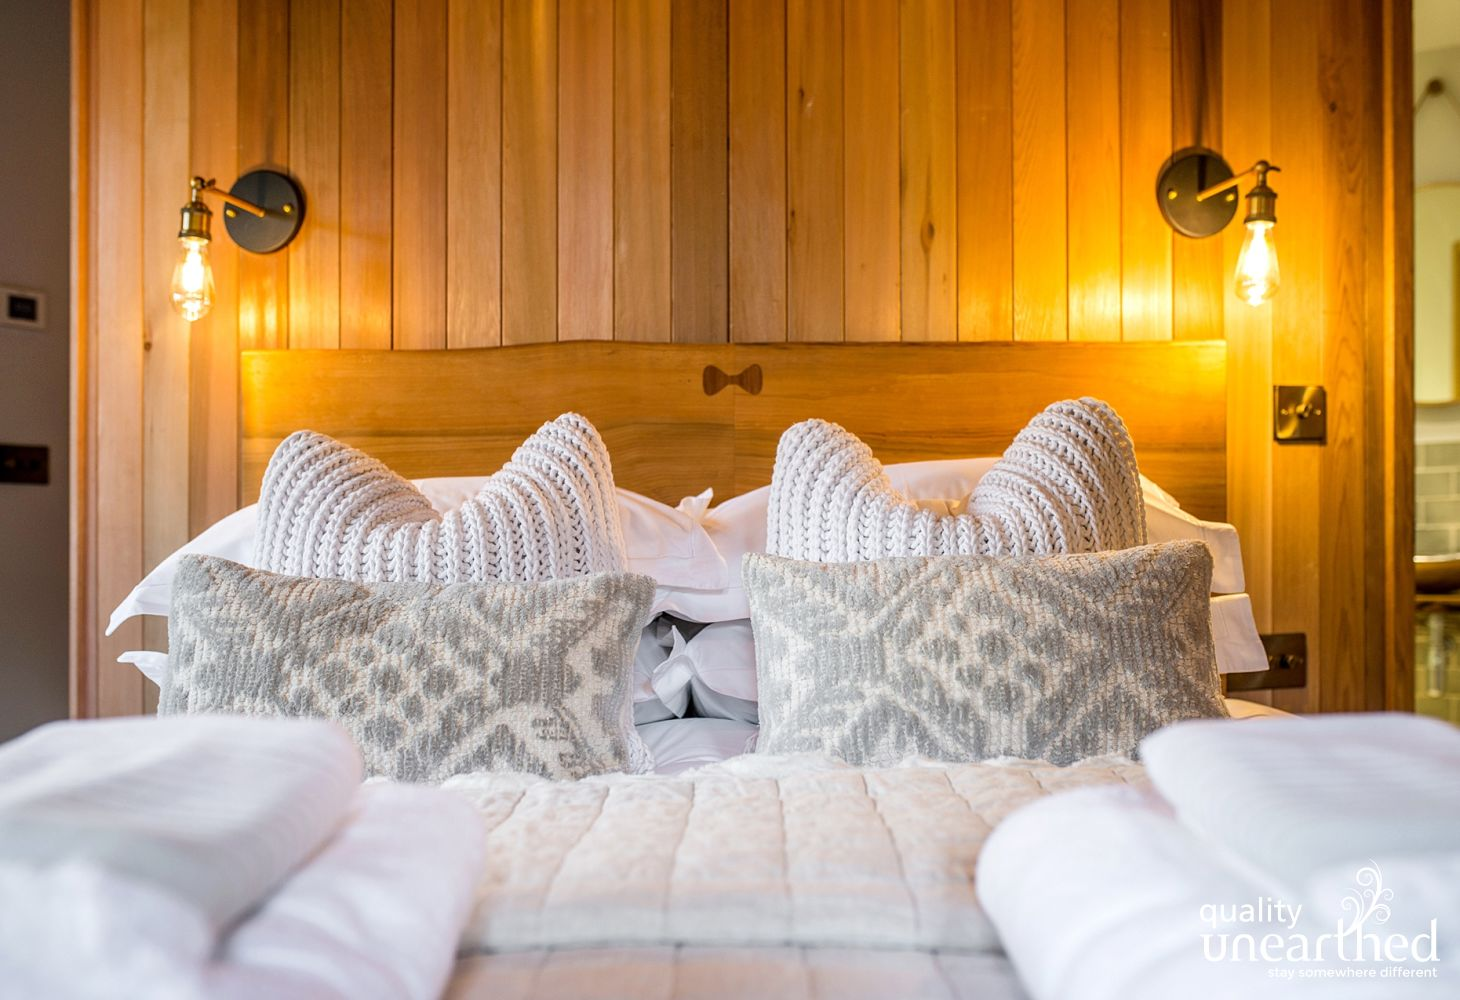 A wooden king sized bed with crisp linens and plump cushions against a cedar wall panel in the master bedroom of the treehouse